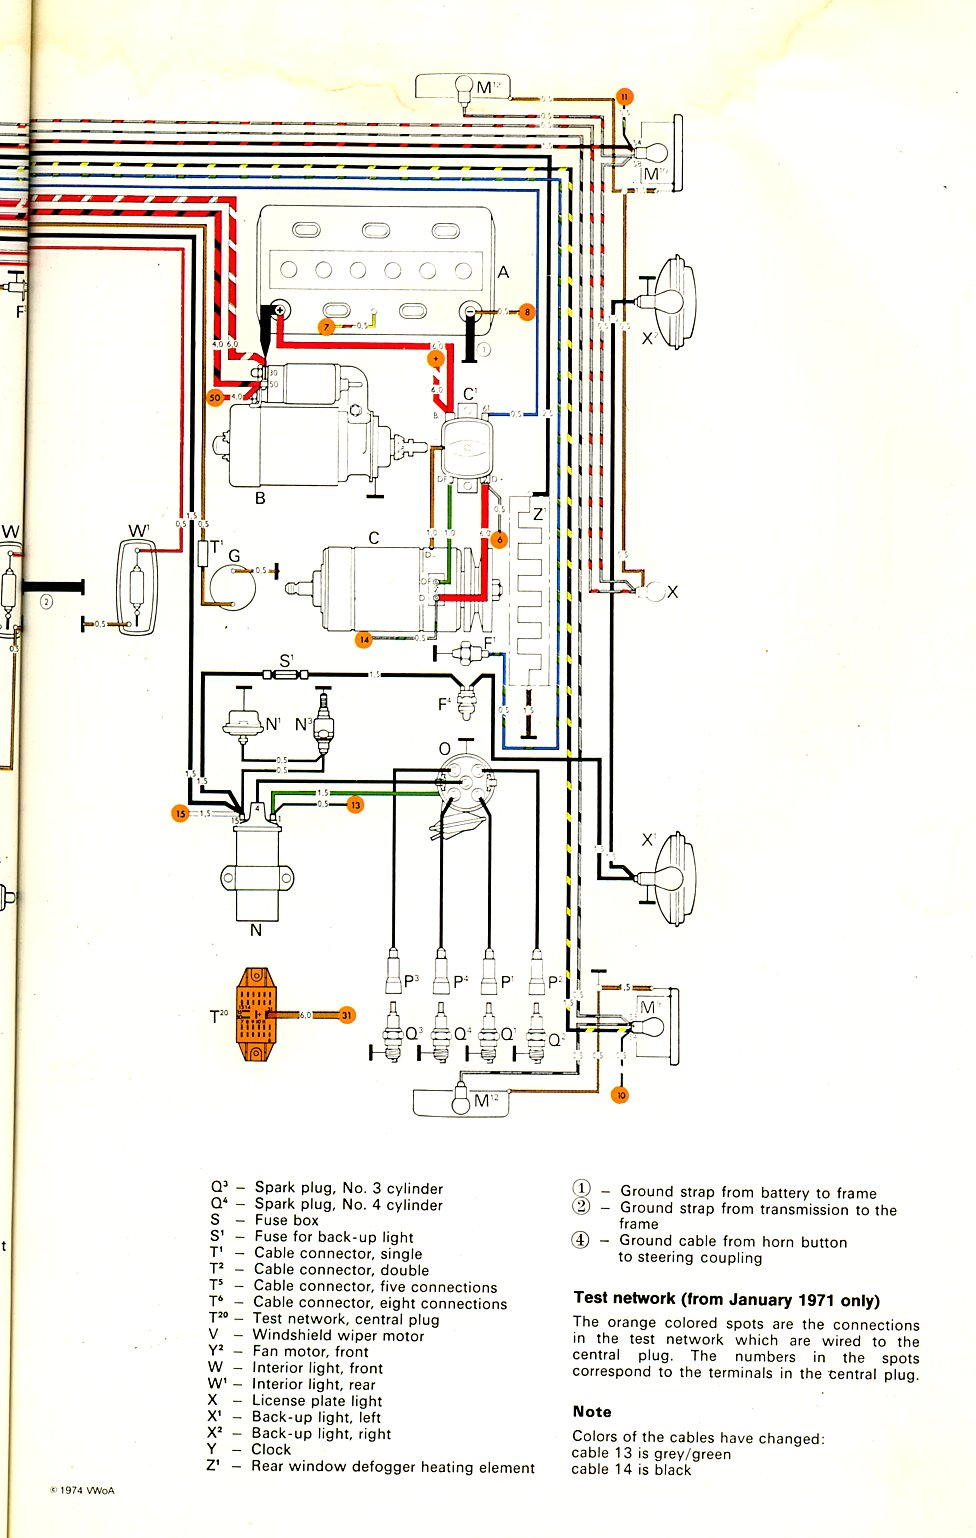 baybus_71b 1971 bus wiring diagram thegoldenbug com 1968 vw bus wiring diagram at bakdesigns.co